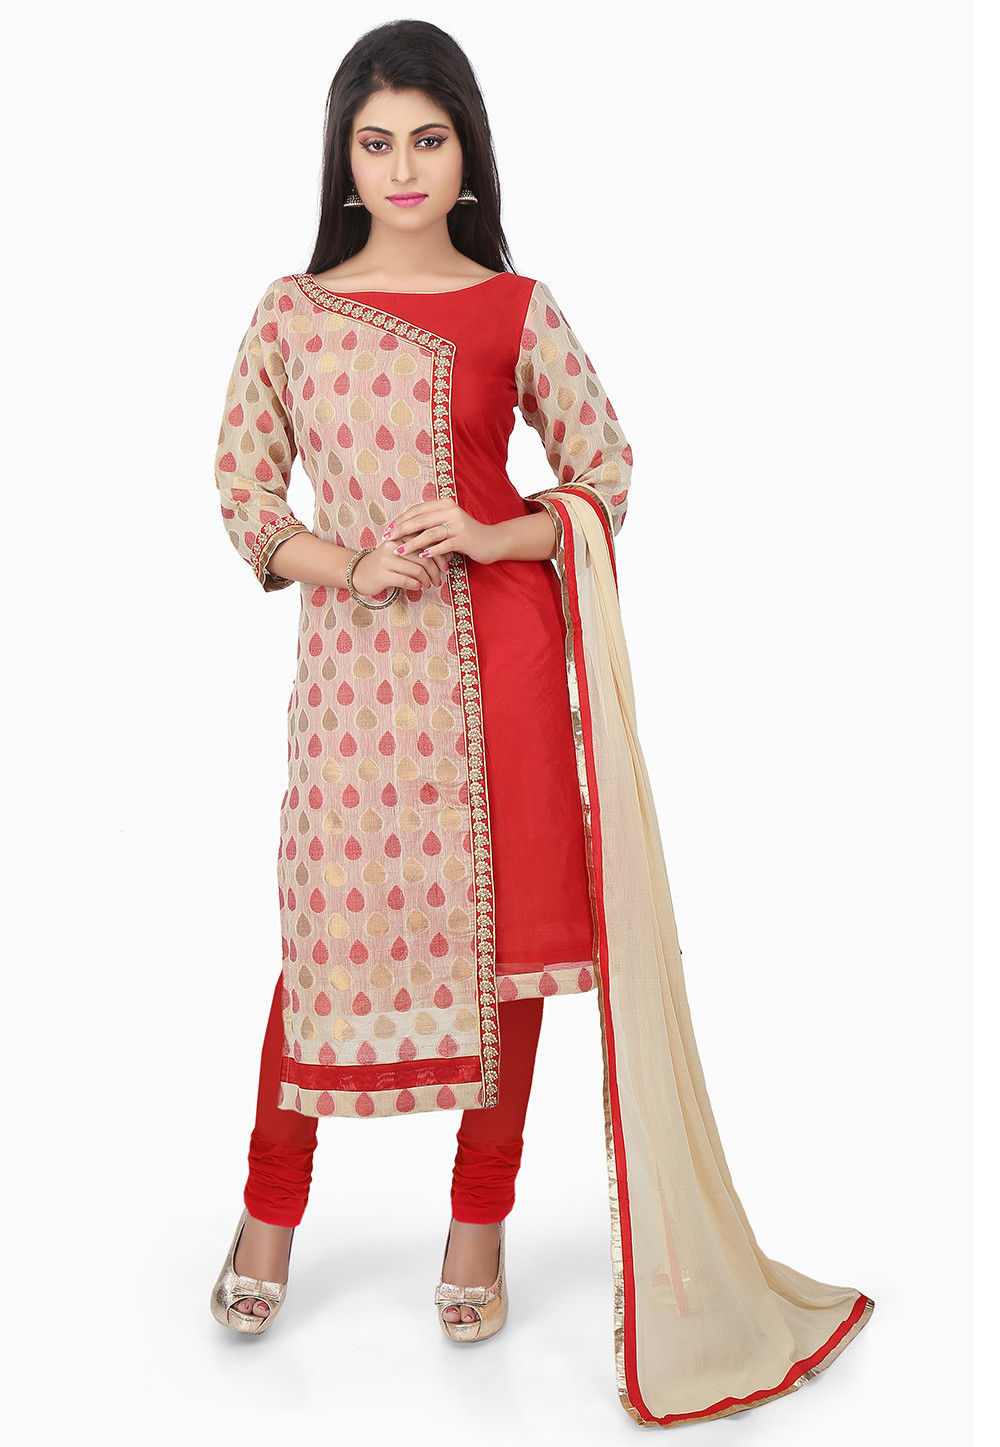 Woven Chanderi Silk Straight Cut Suit in Beige and Red